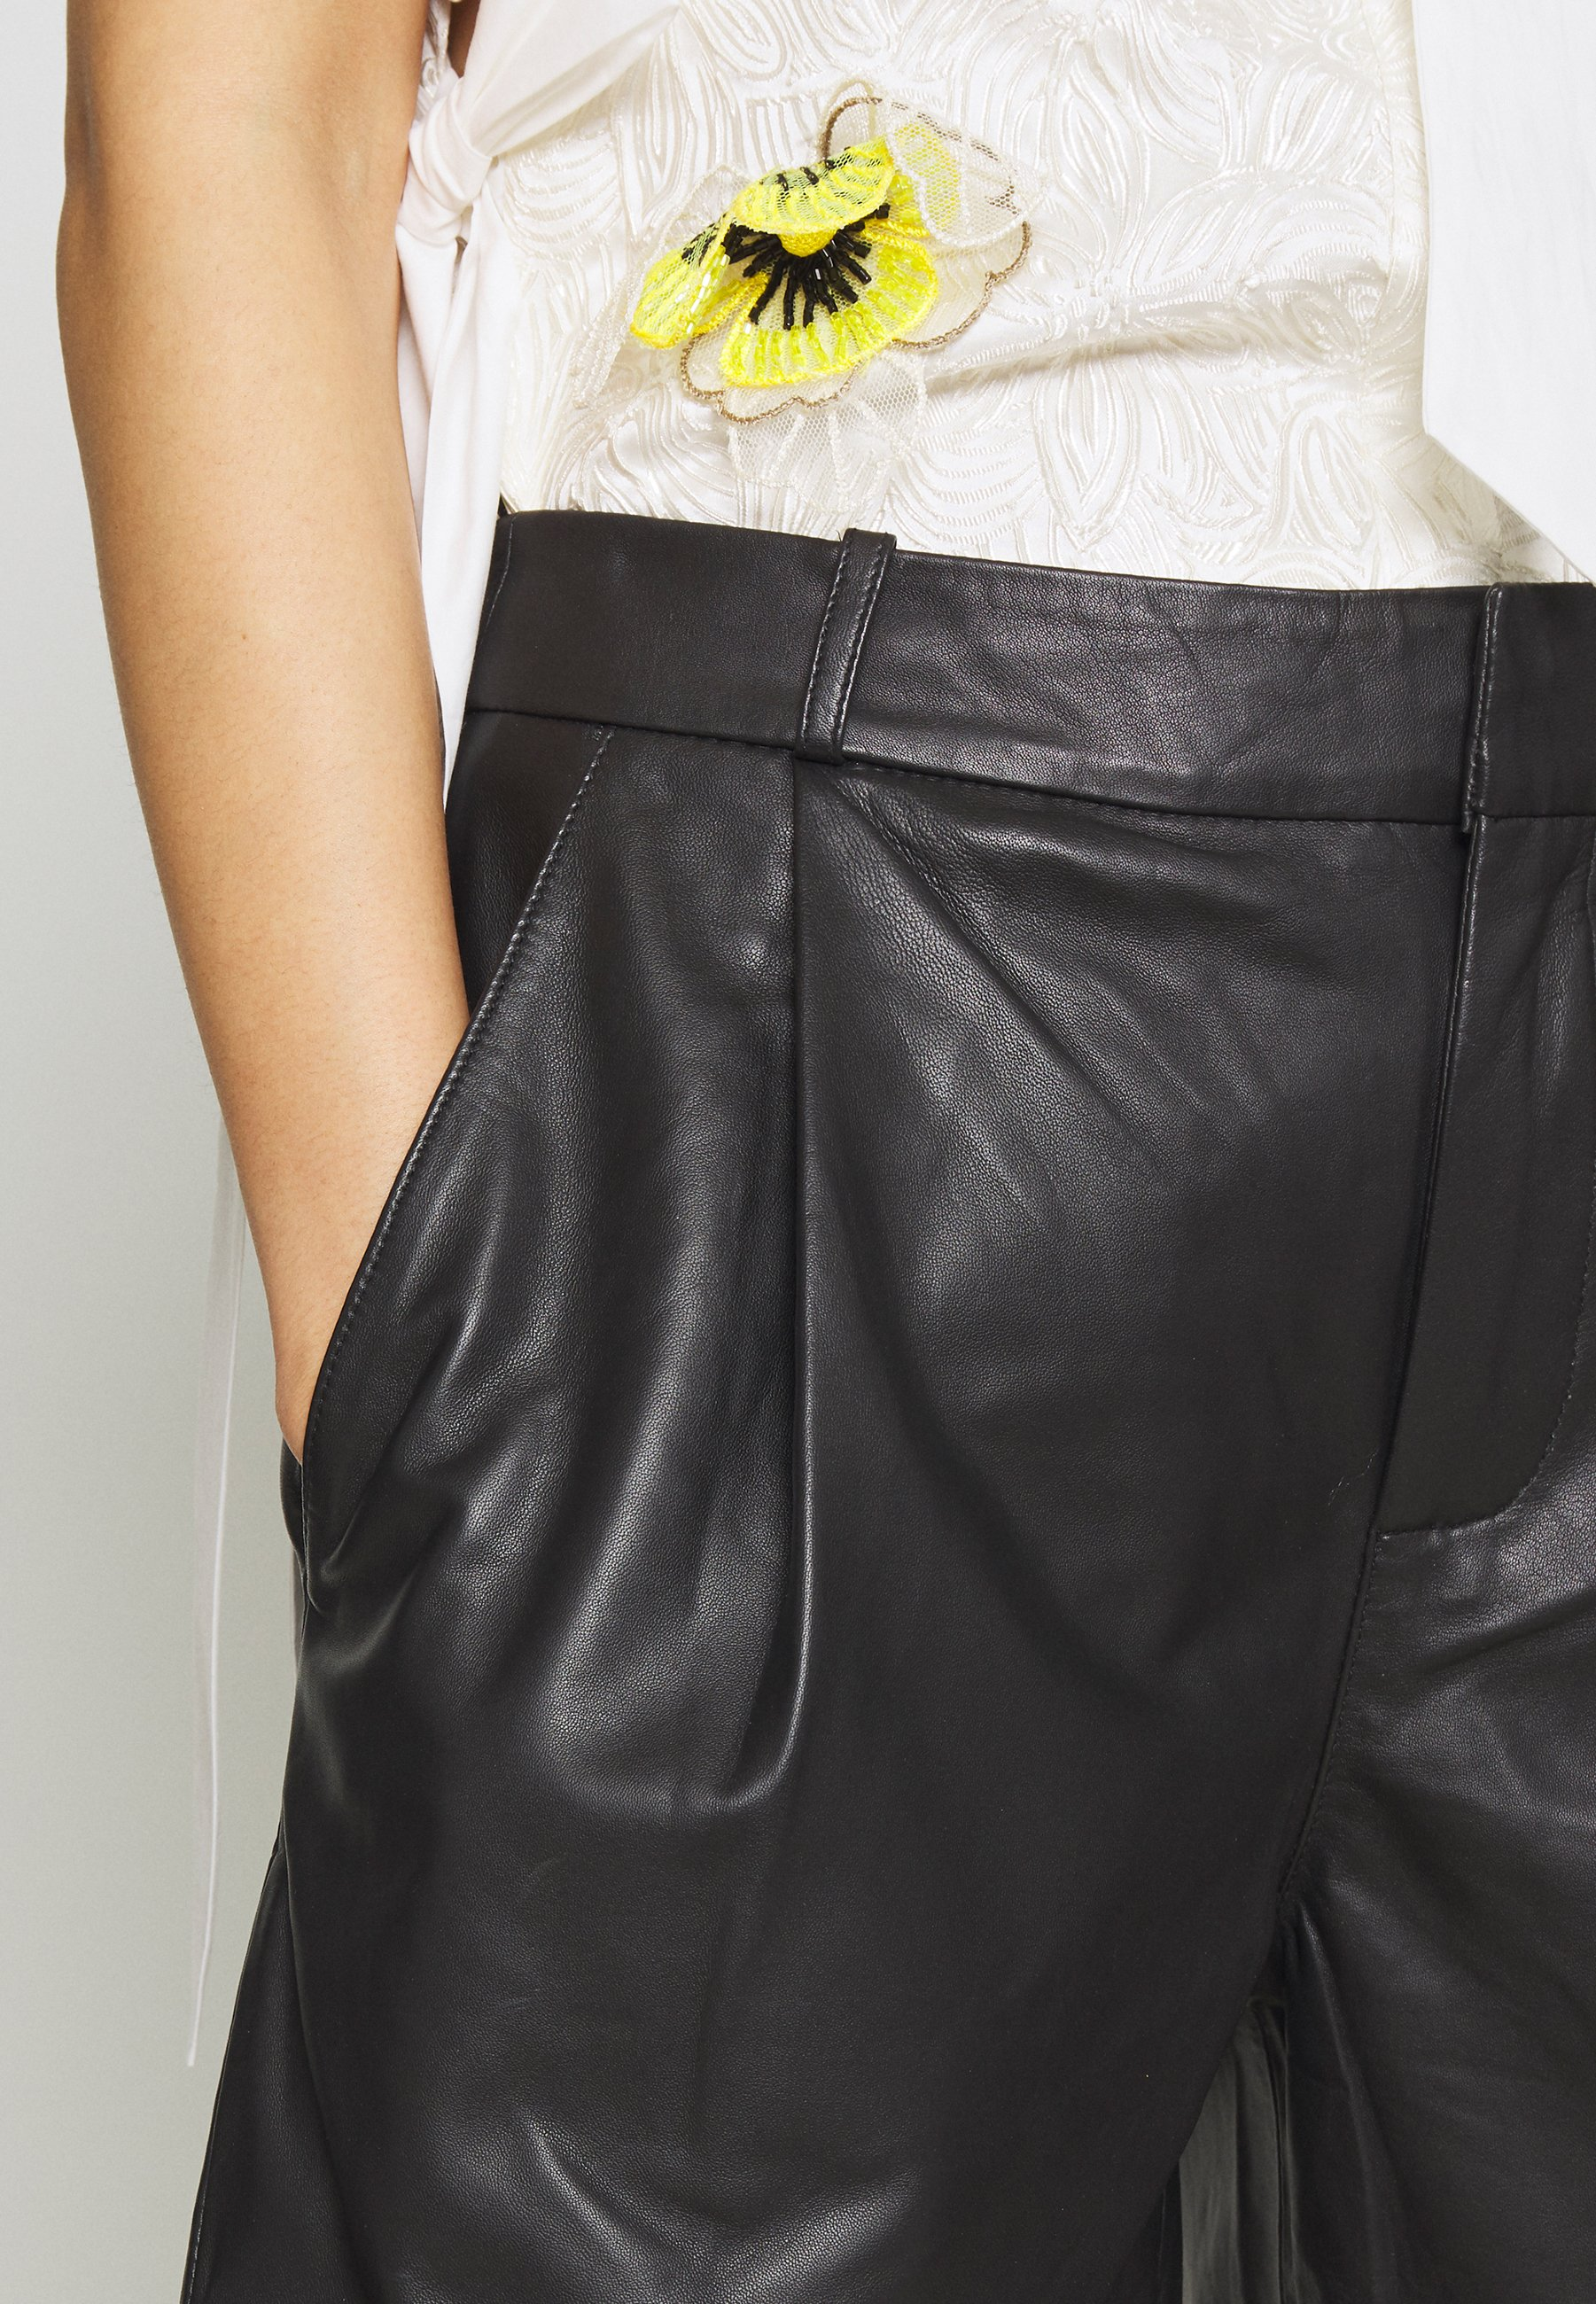 Hot Sale Women's Clothing Custommade MAHIAM Leather trousers anthracite black 4RfjFGUL0